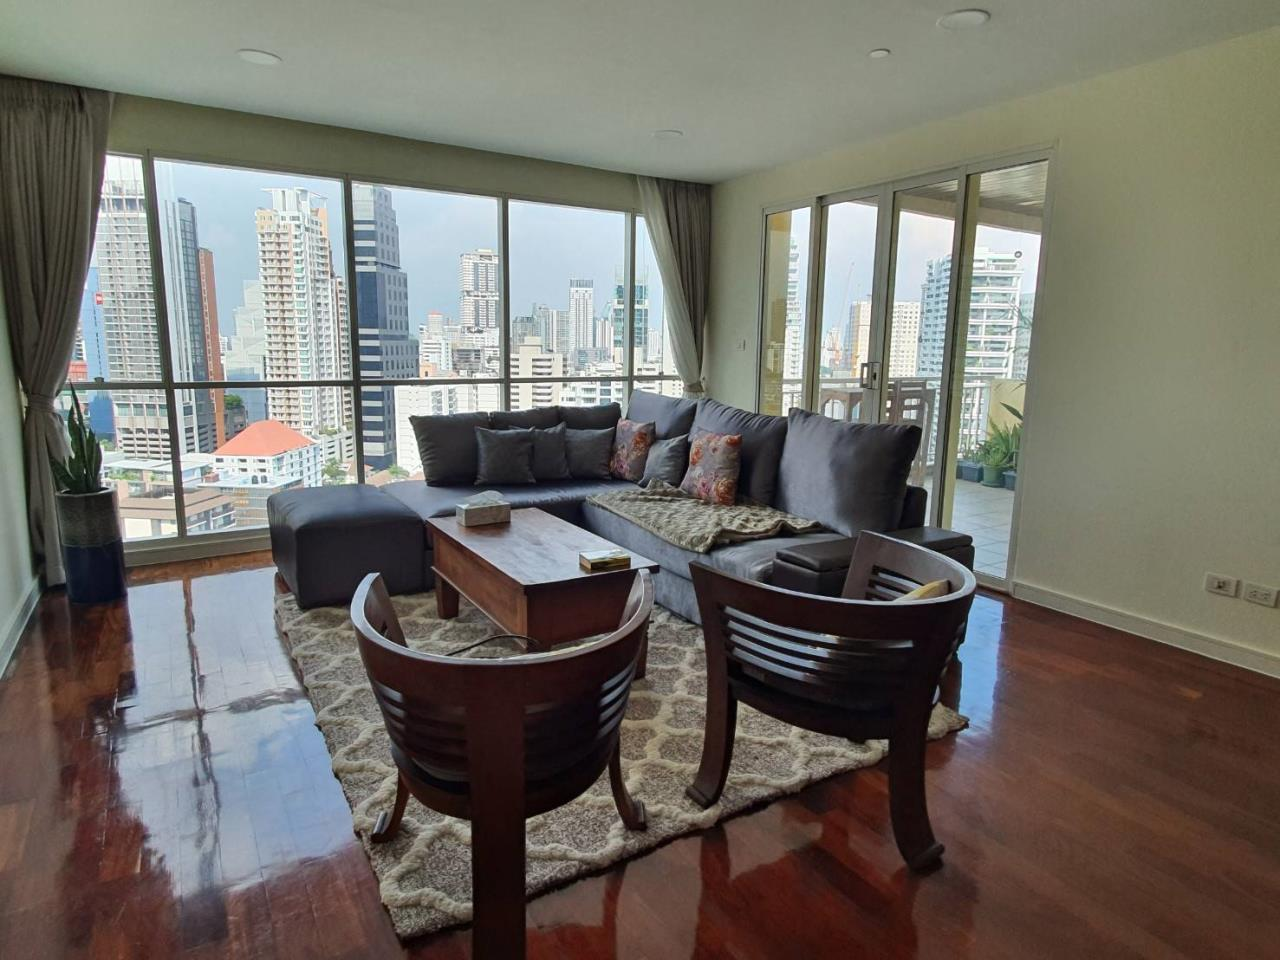 Bestbkkcondos Agency's Wilshire Condo Sukhumvit 22 - 140 SQ.M - for rent: 70,000 THB - 2 bedrooms, 2 bathrooms 15